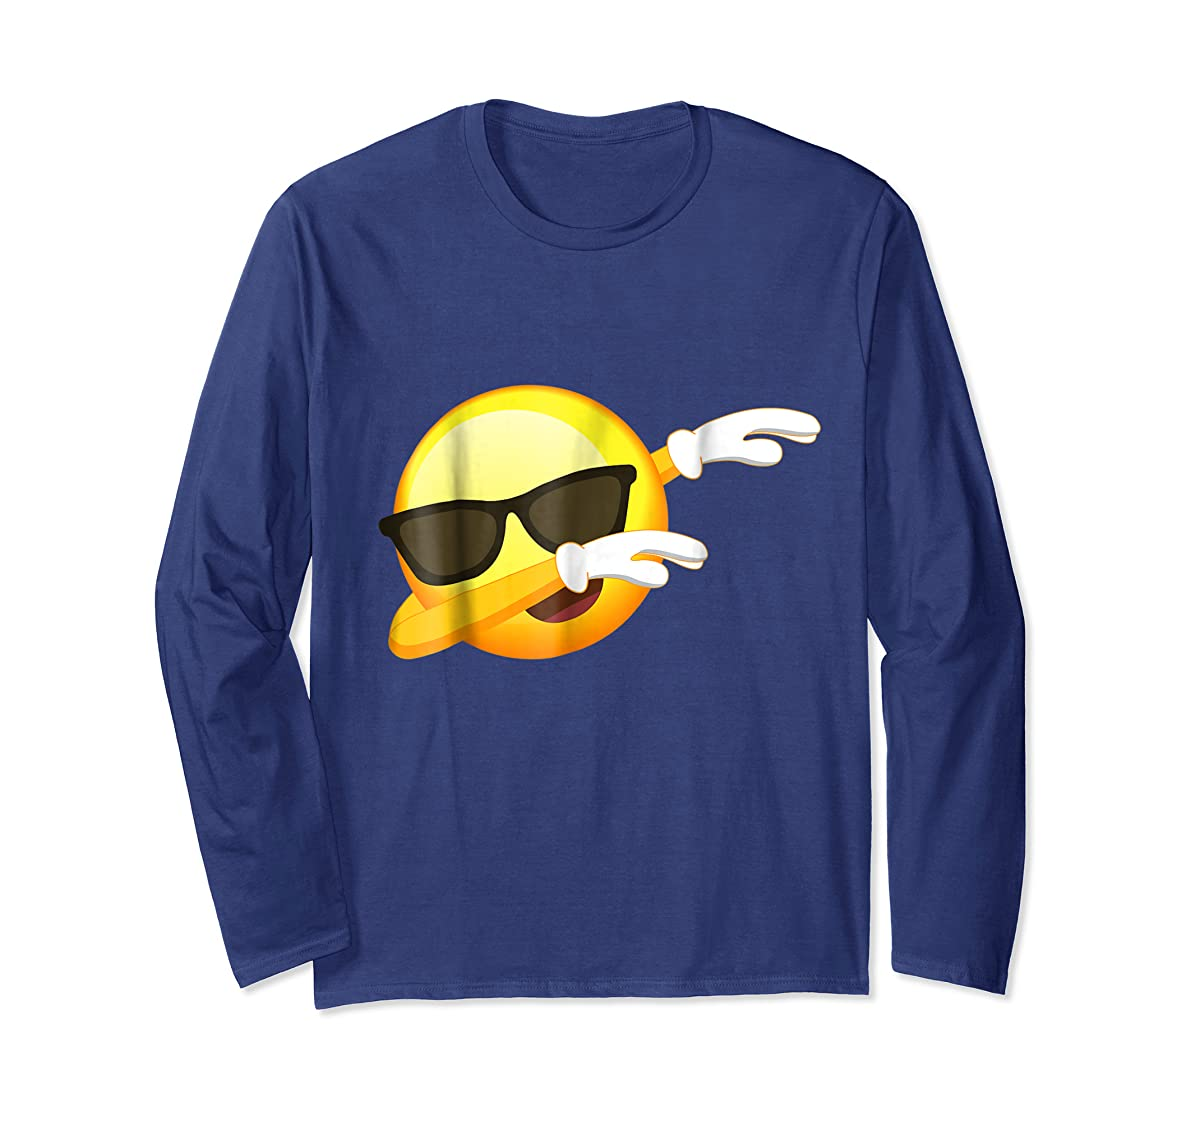 Funny Dabbing Emoji Shirt - Cool Emoji Dab T-Shirt-Long Sleeve-Navy